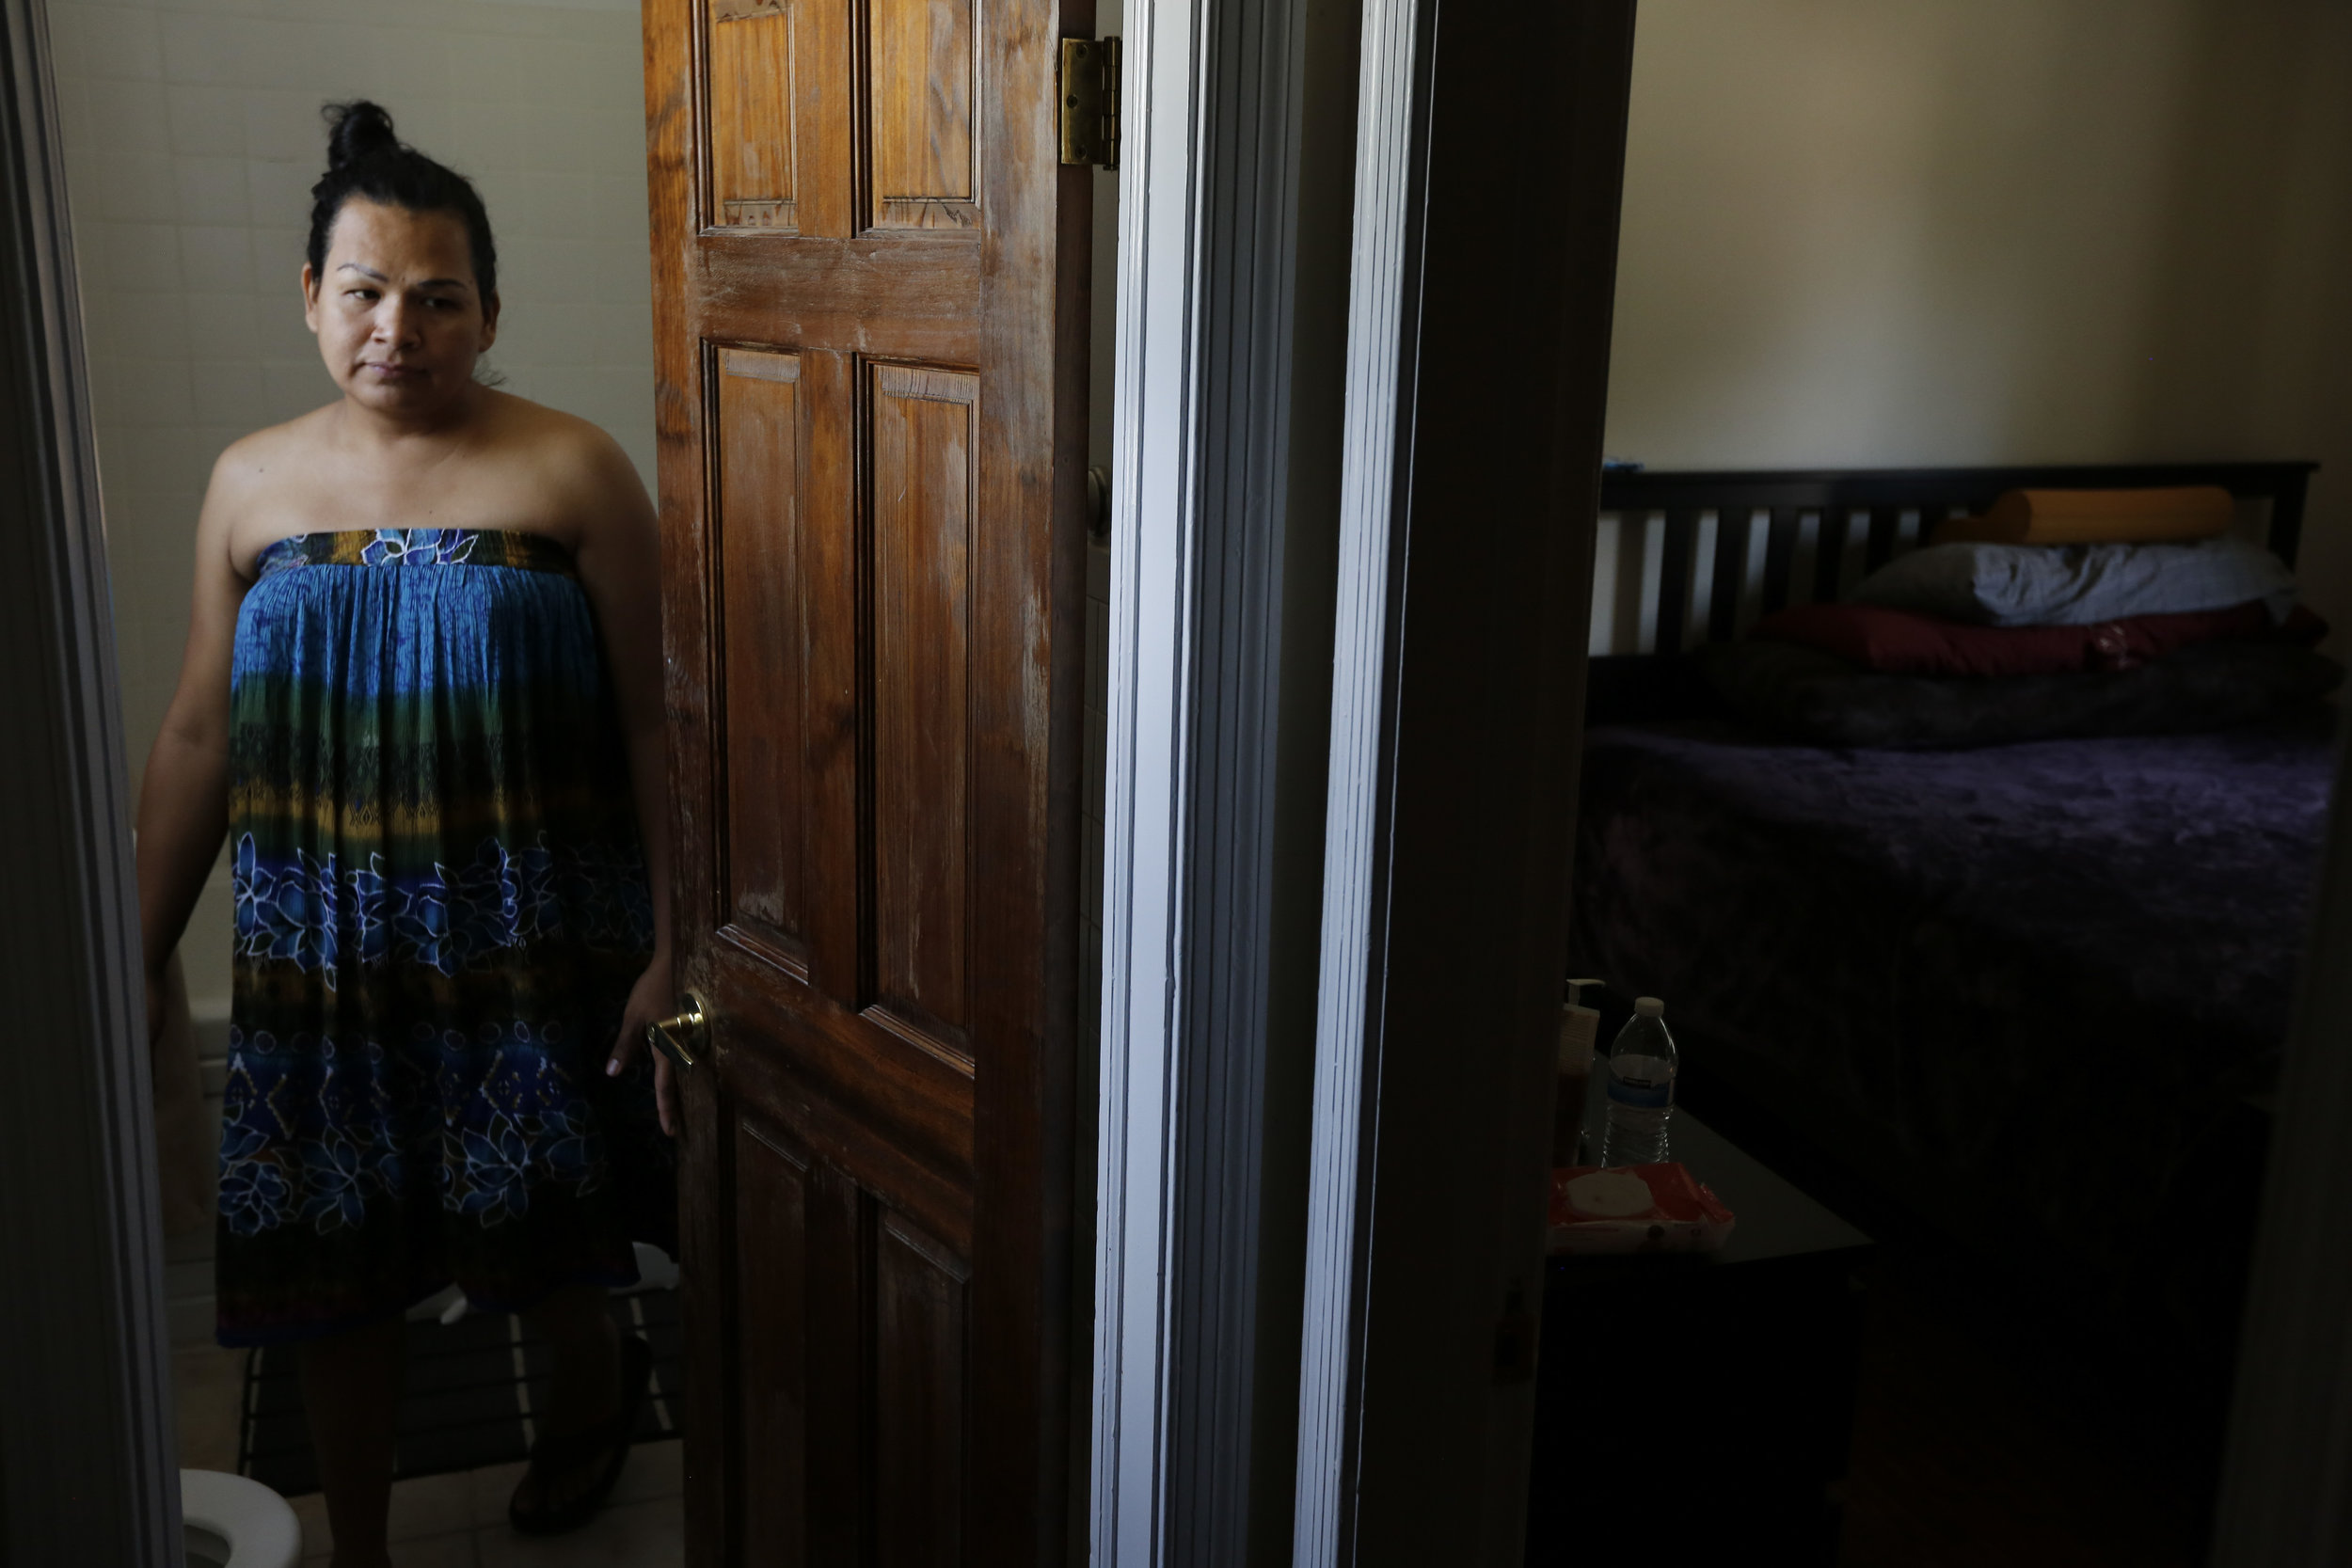 The Journey of Transgender Latina Women in the U.S. - Reported by Irene Benedicto - Photo and Video by Oliver Contreras